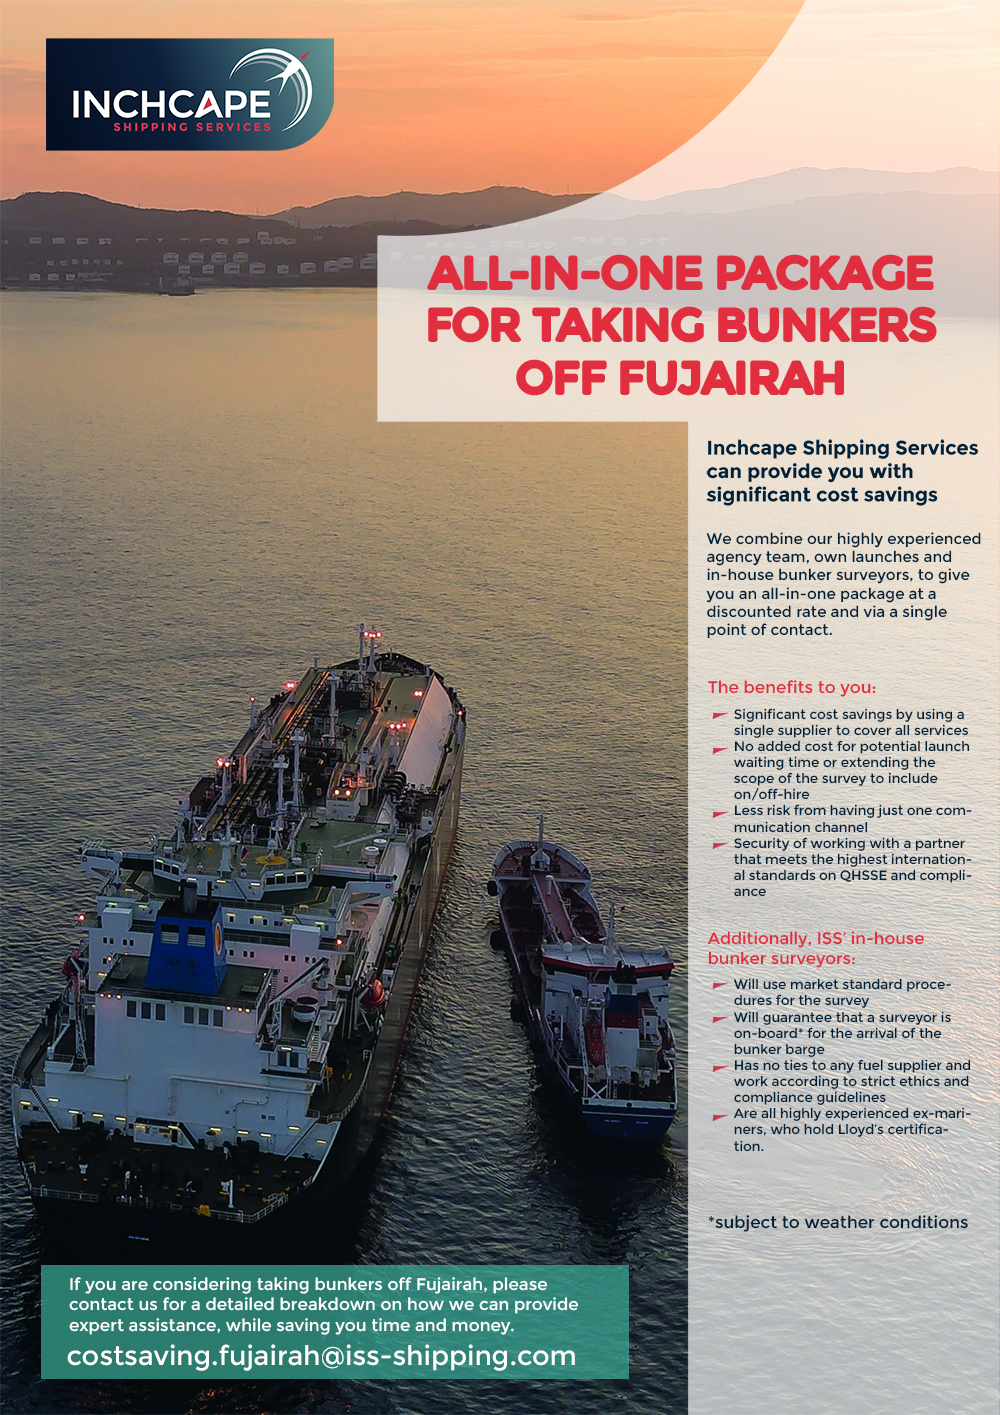 Inchcape Shipping Services - A Smoother, Smarter, Ocean